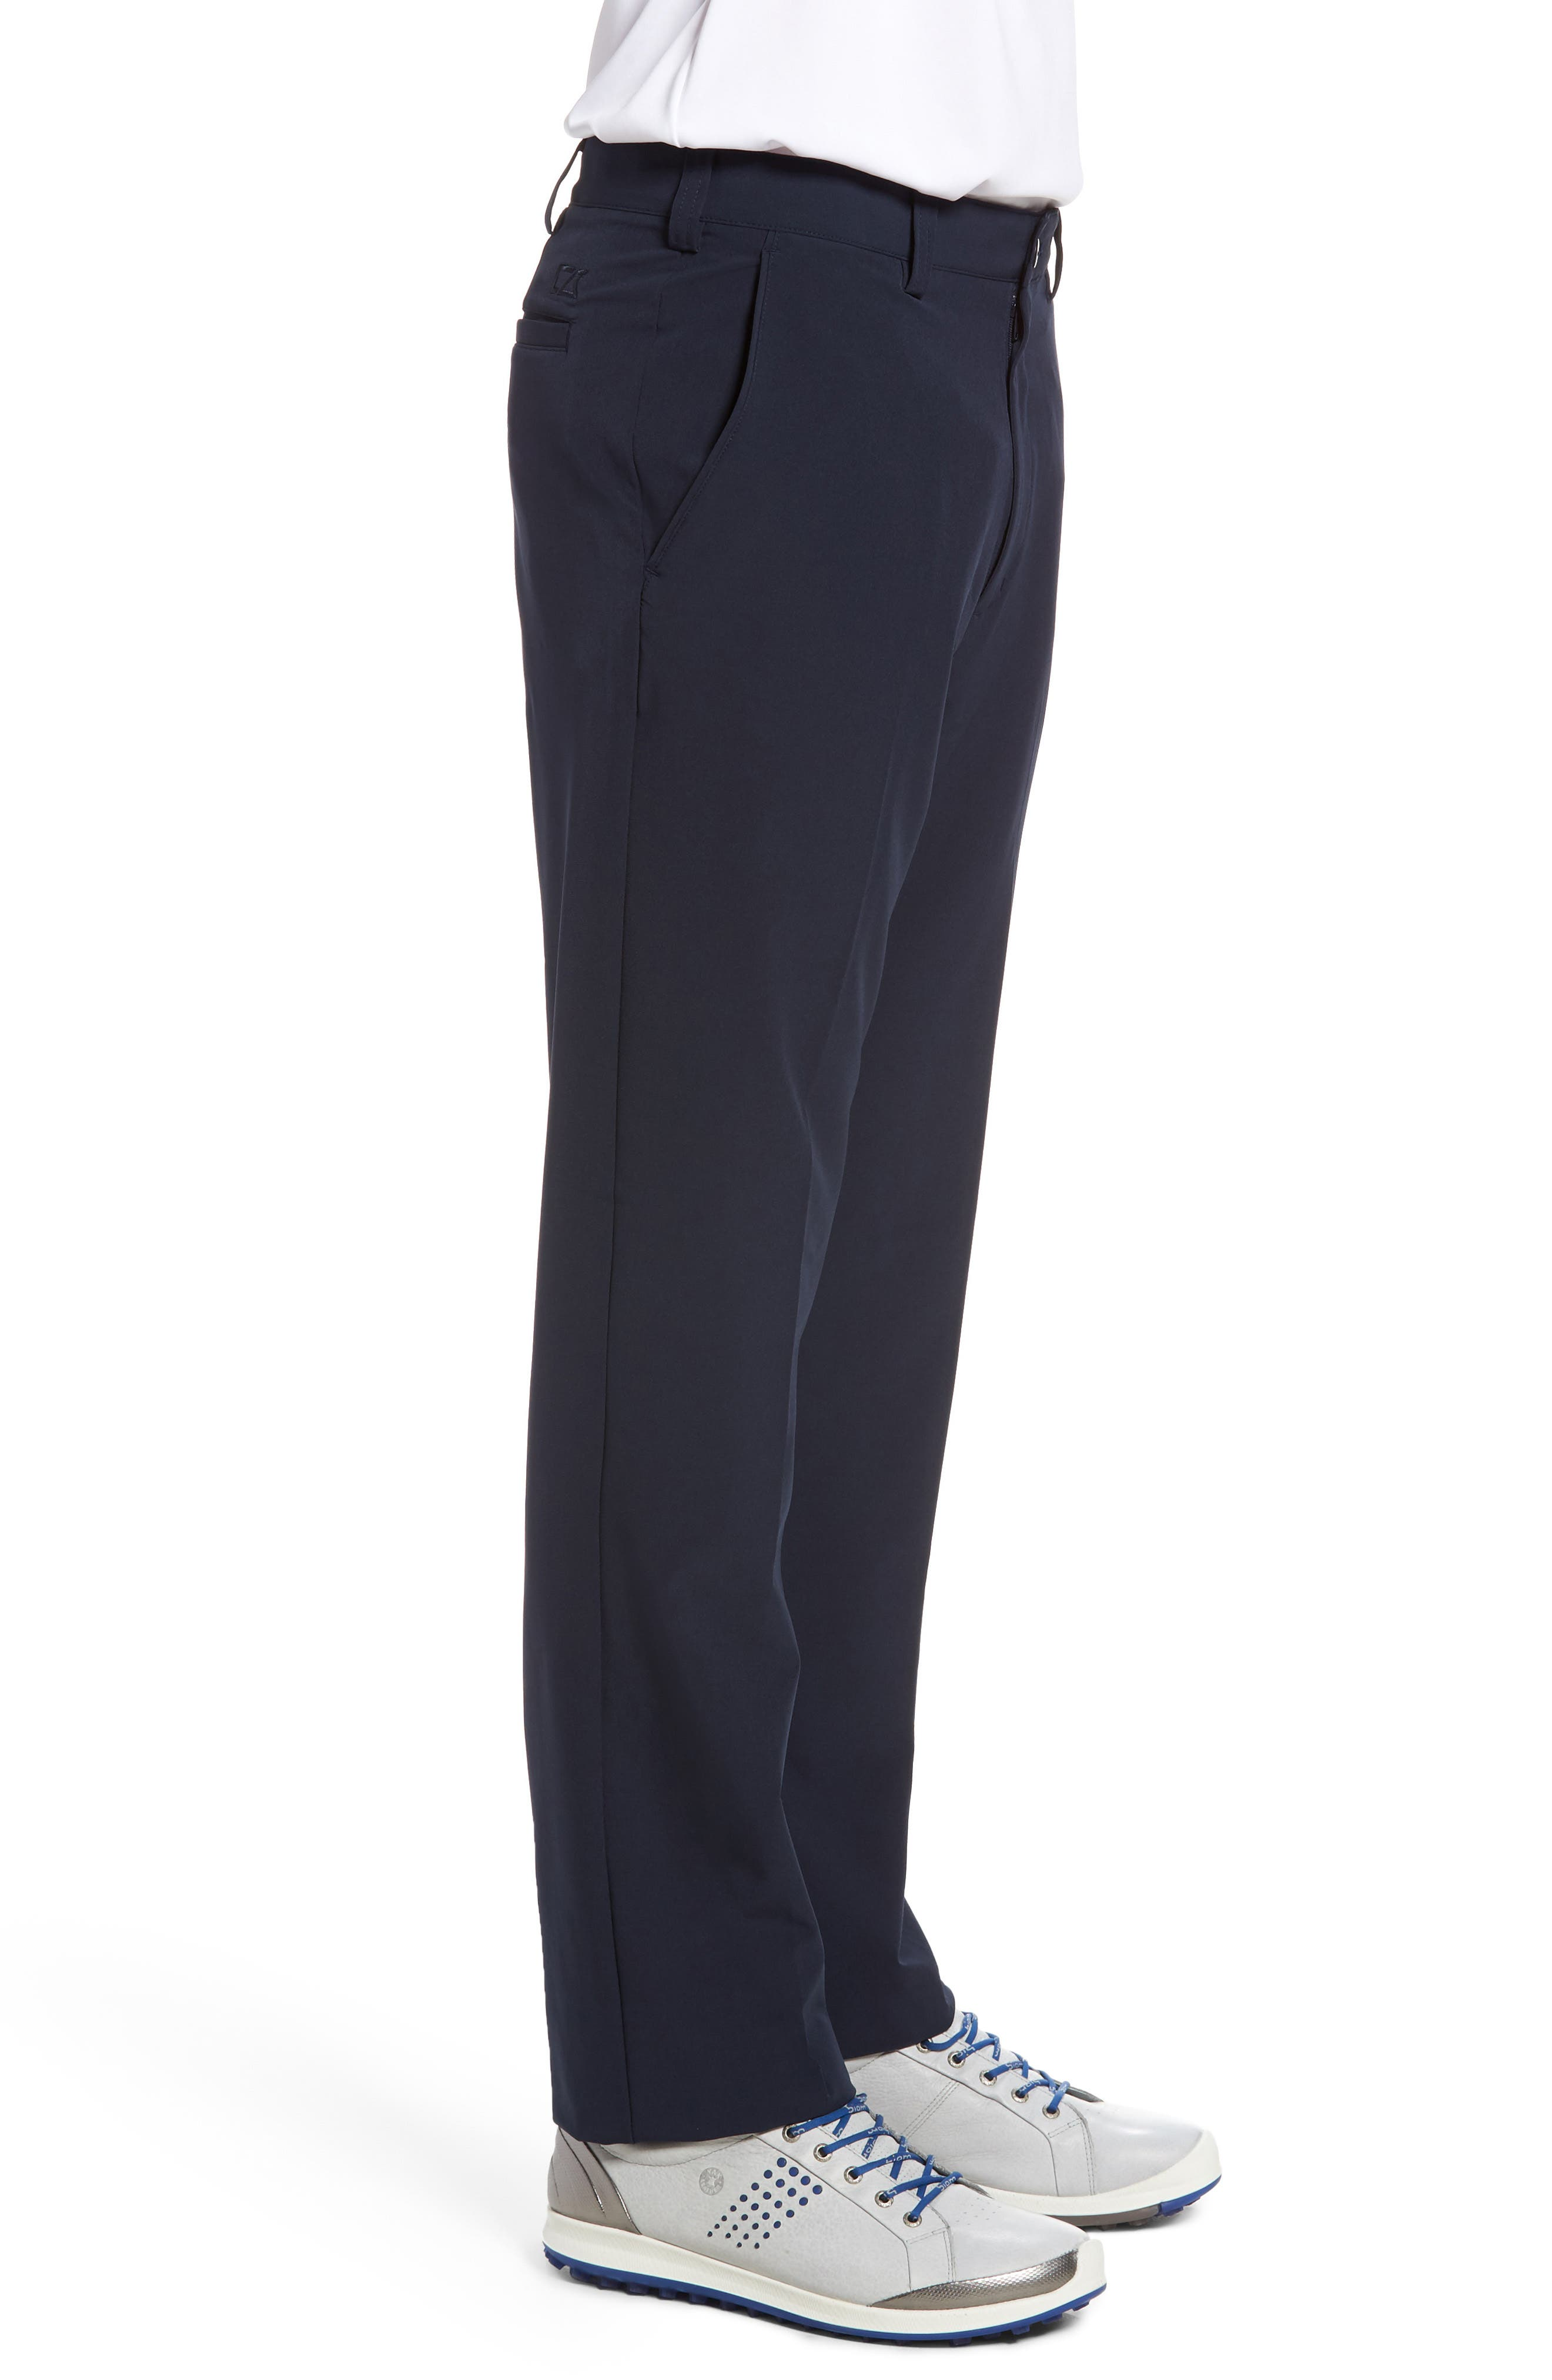 DryTec Chinos,                             Alternate thumbnail 3, color,                             Navy Blue